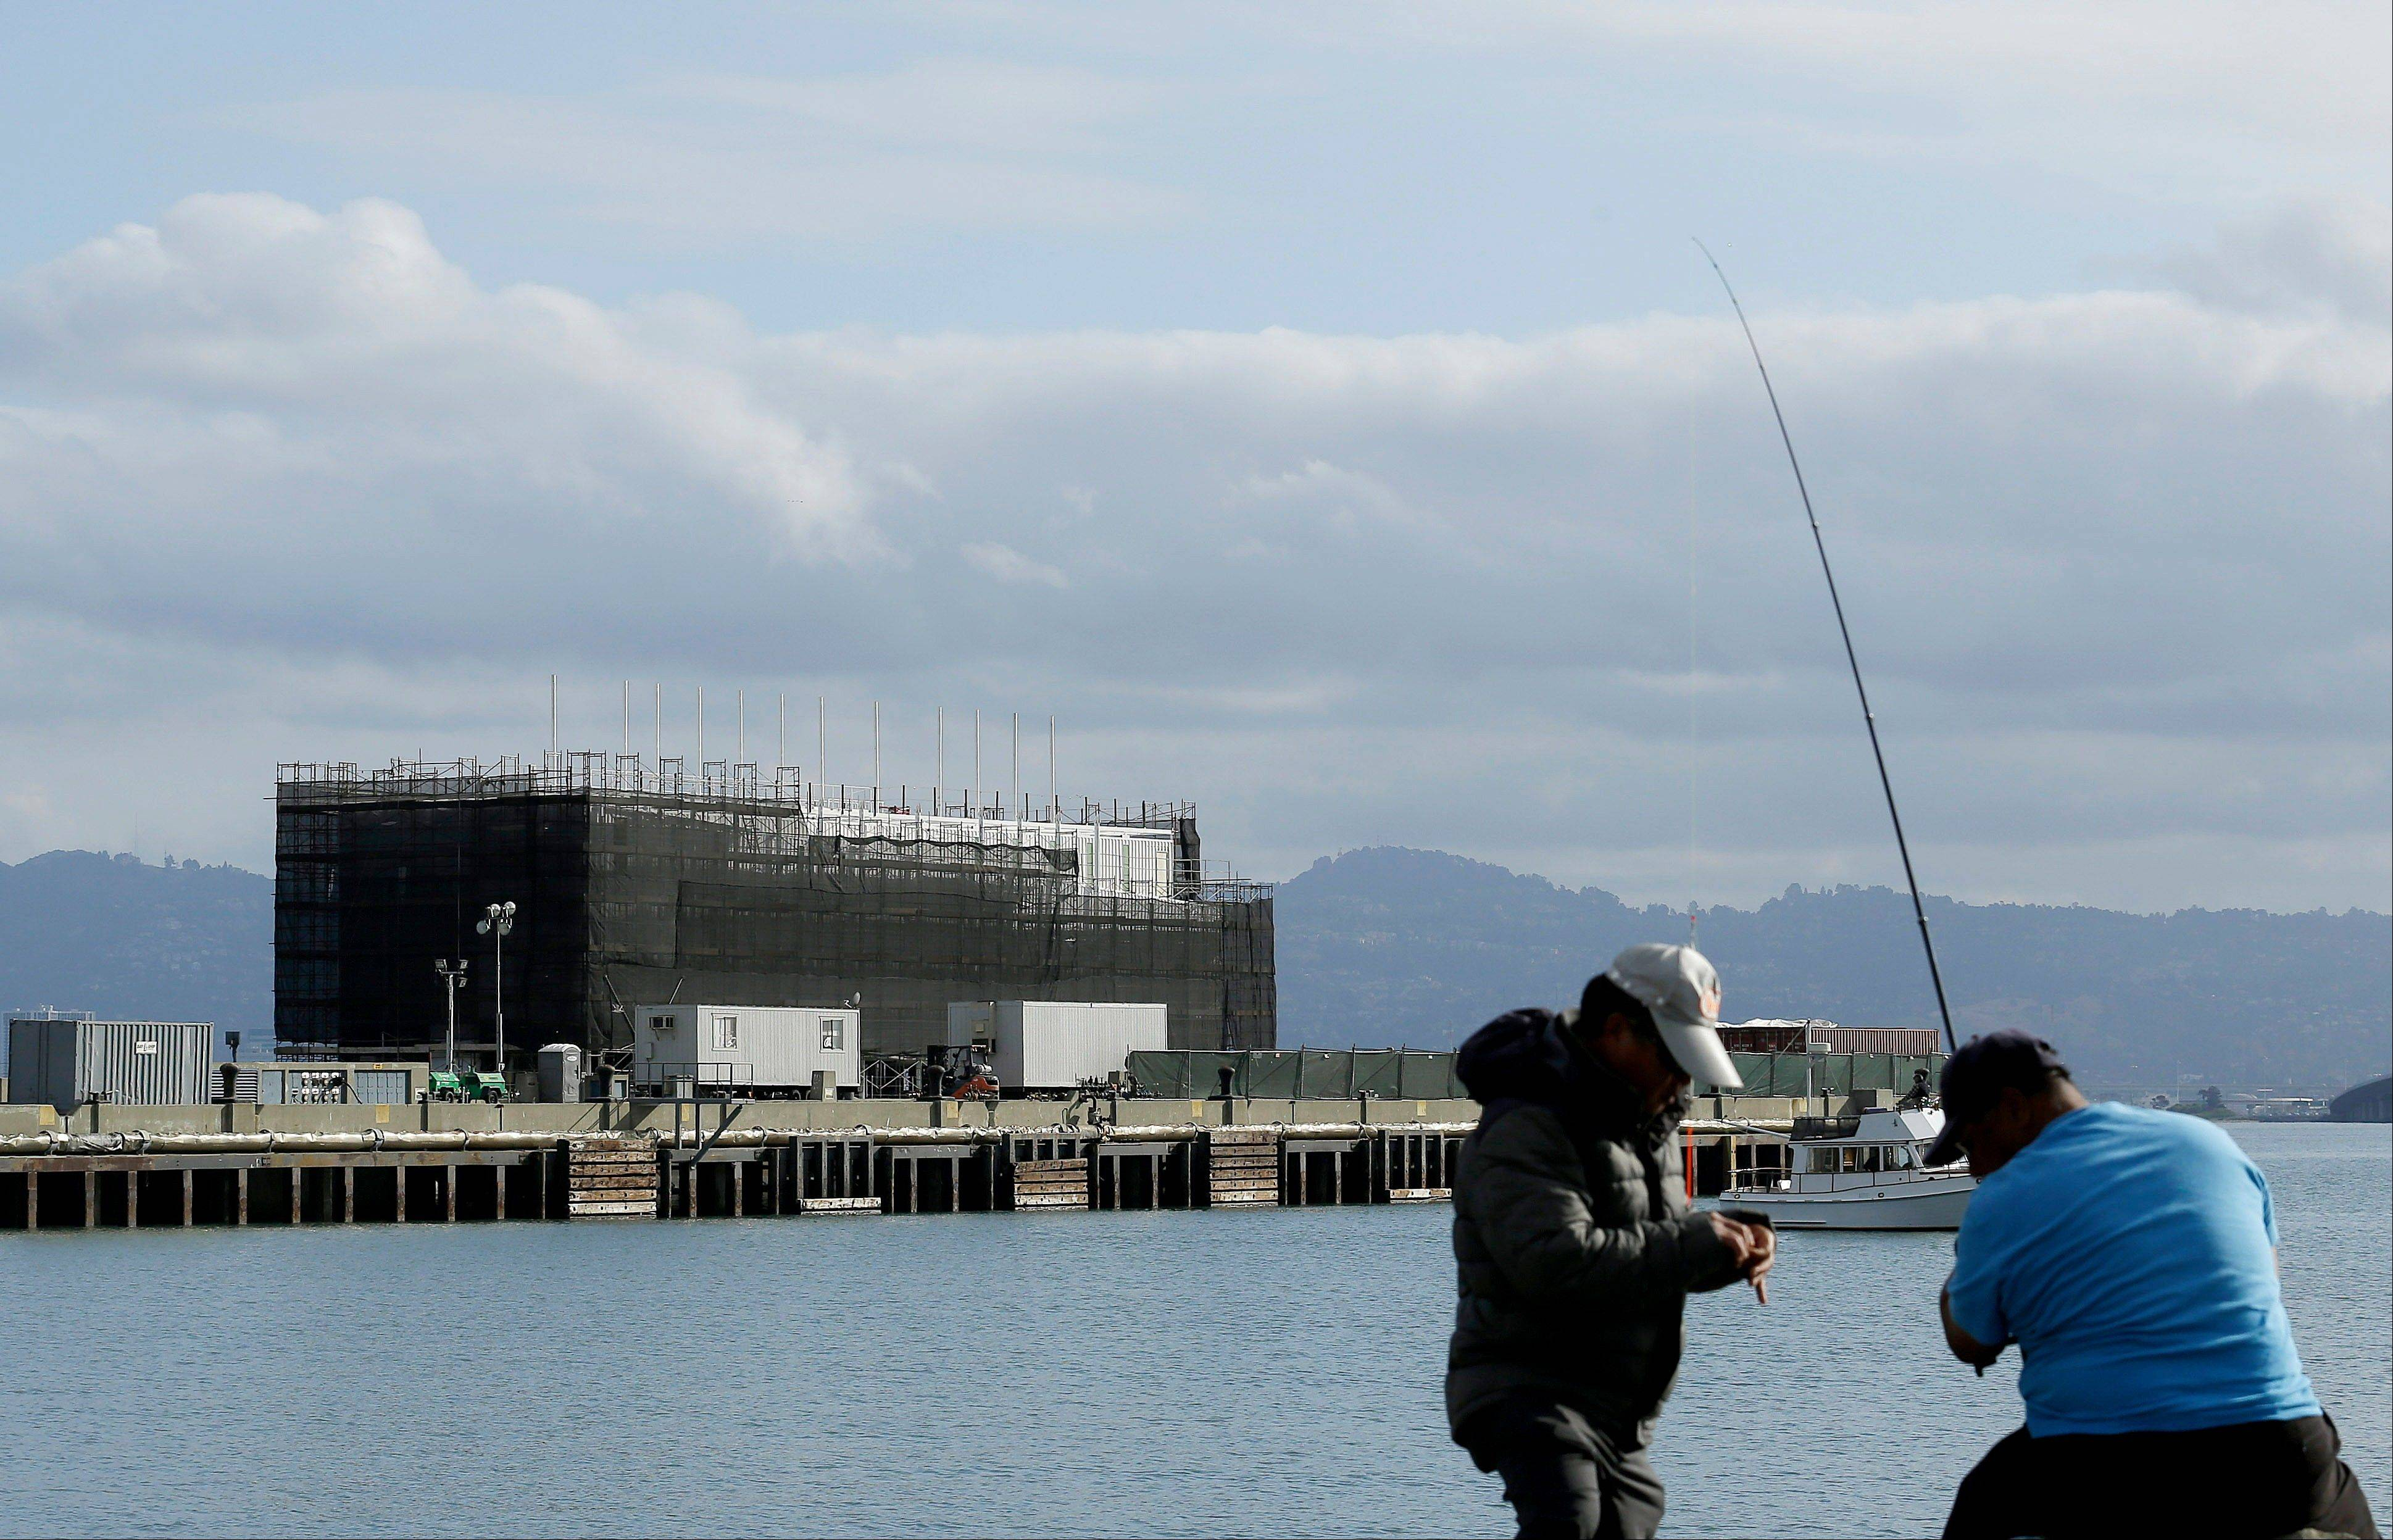 Two men fish in the water in front of a Google barge on Treasure Island in San Francisco. A state agency says Google must move its mystery barge from a construction site on an island in the middle of the San Francisco Bay because the permits are not in order.